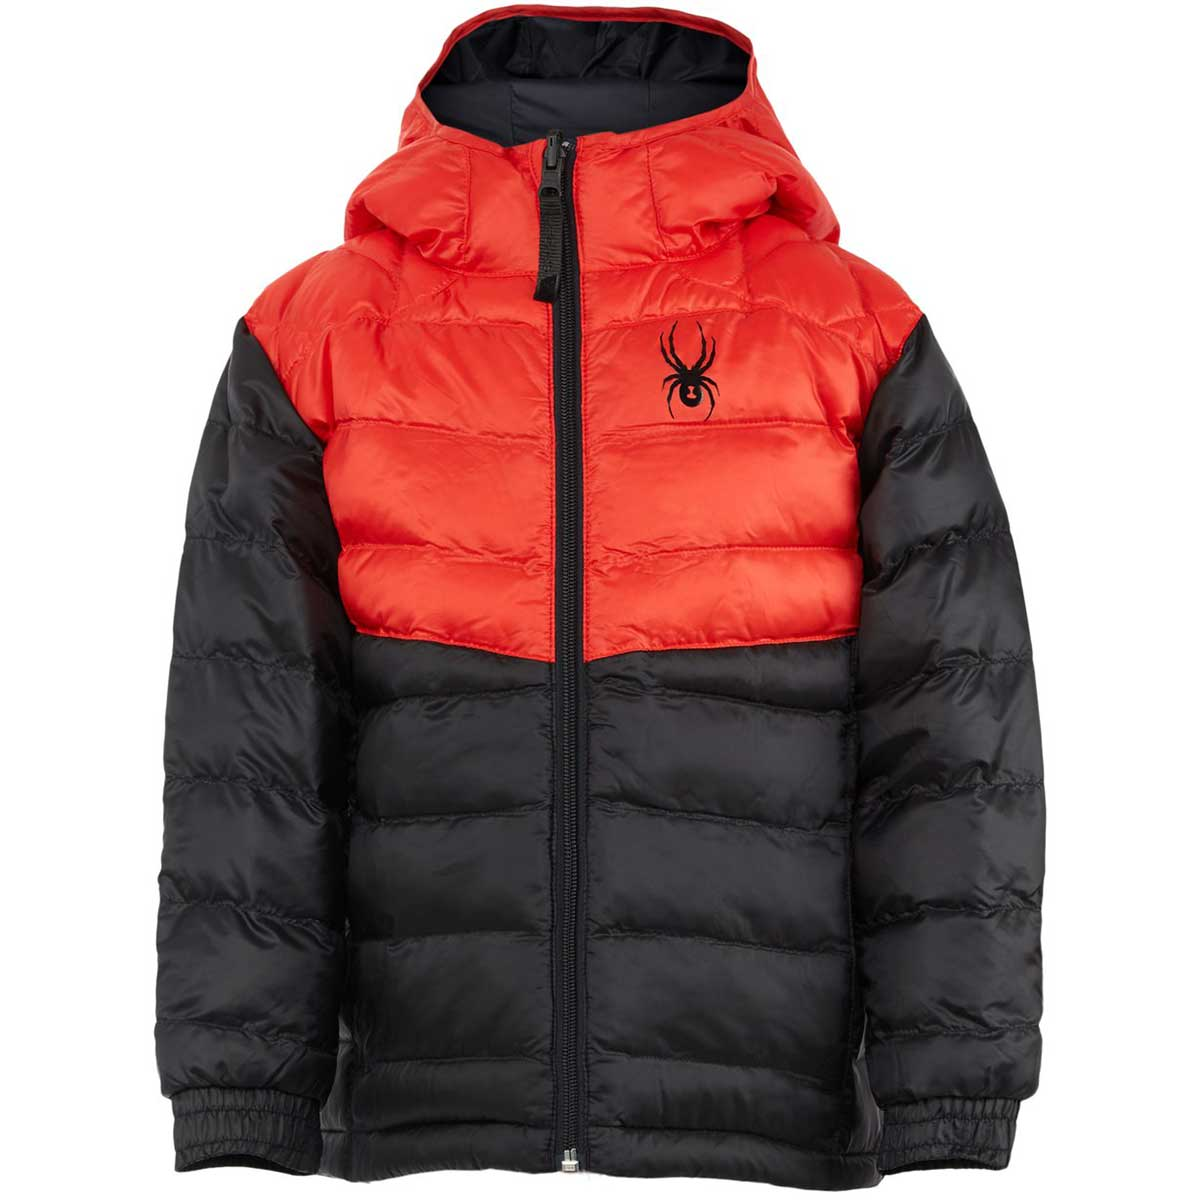 Spyder boys' Mini Timeless Hoodie Down Jacket in Black front view